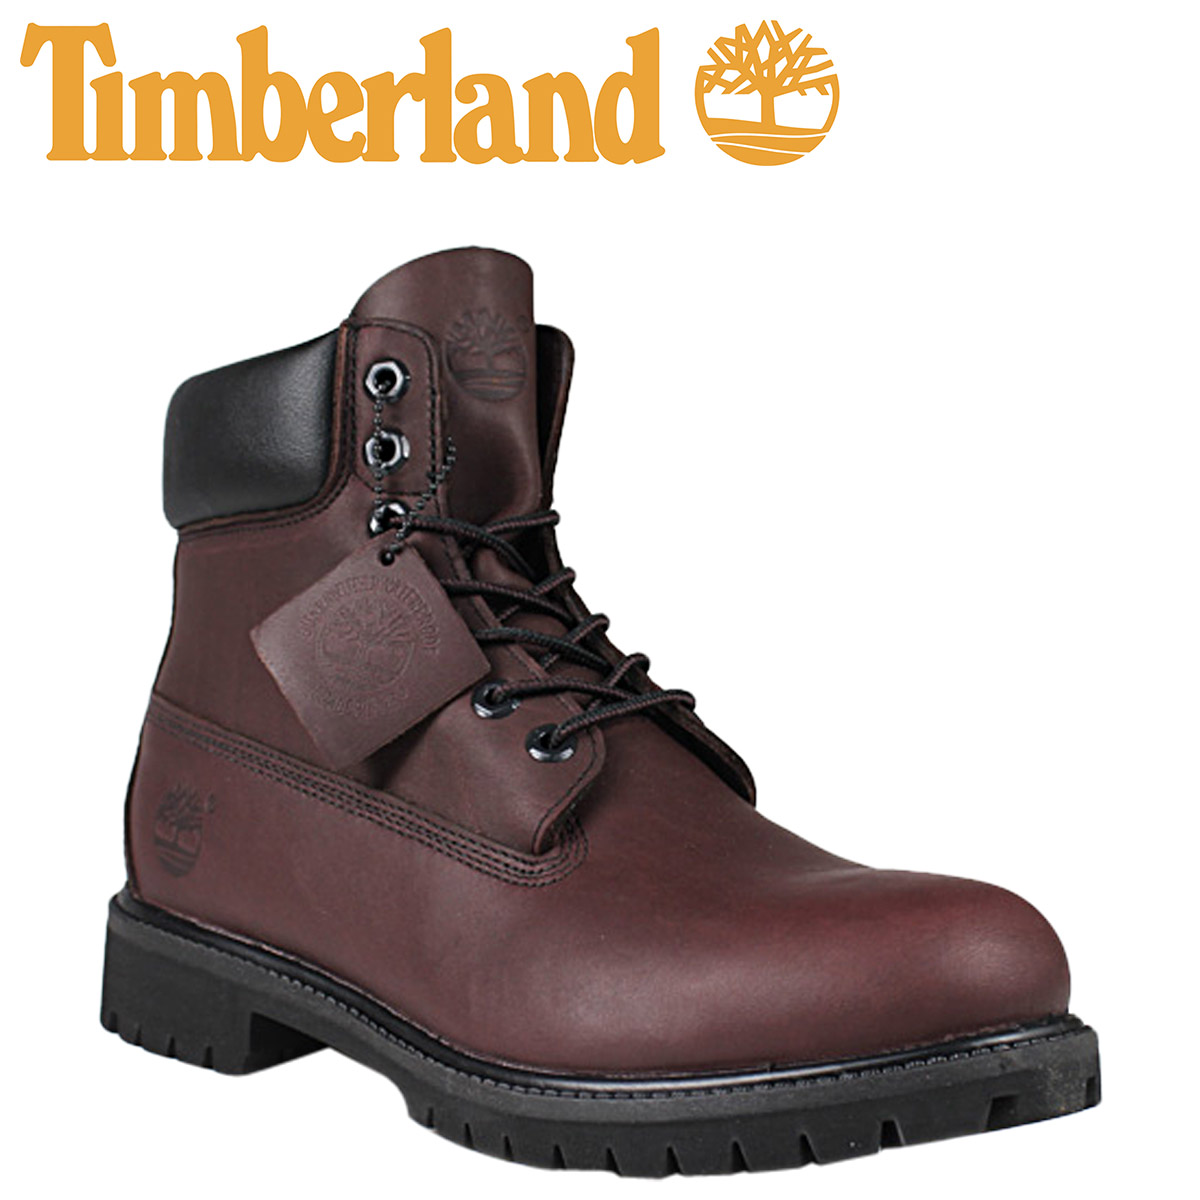 049f286eb23 Timberland Timberland 6 inch premium waterproof boots 6-INCH PREMIUM  WATERPROOF BOOT #71595 dark red leather shoes work boots mens